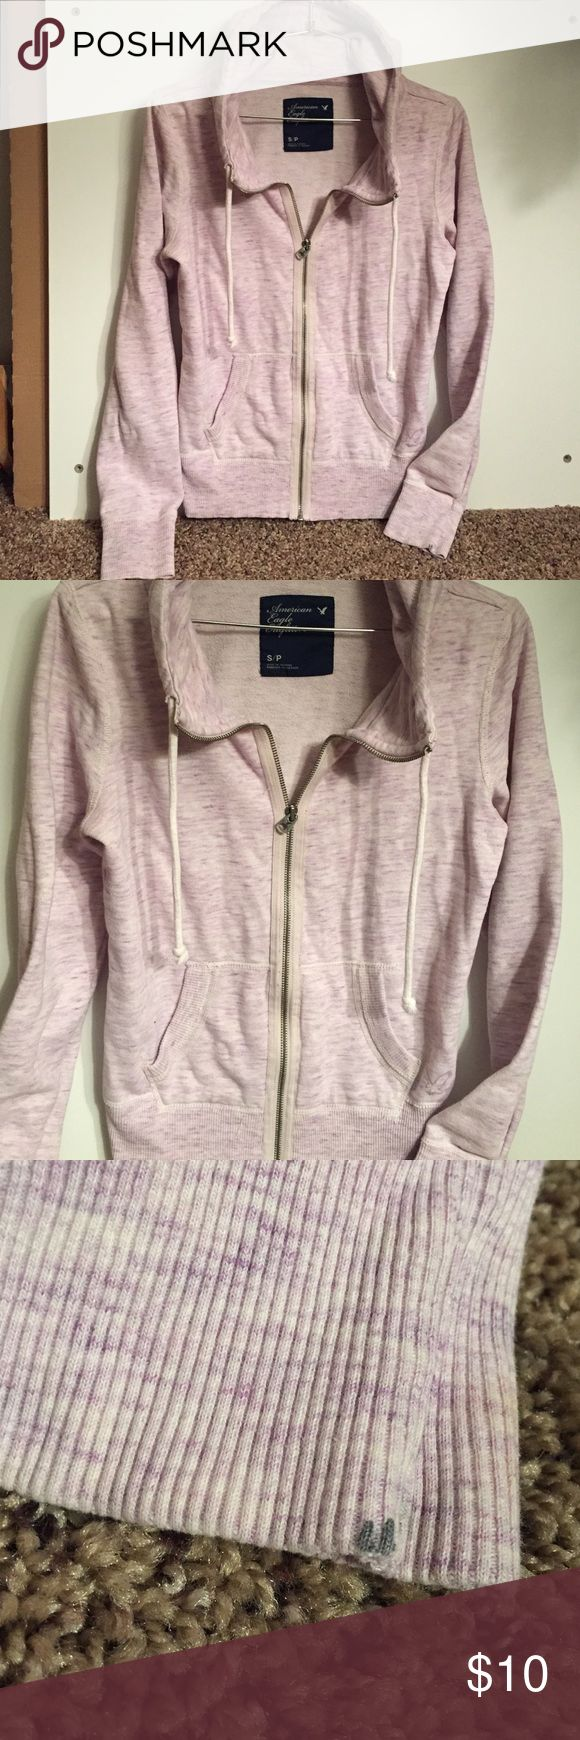 Light purple zip up hoodie American eagle light purple zip up Hoodie. In great condition. Does have small grey paint mark on left hand. As seen in pic 3. American Eagle Outfitters Tops Sweatshirts & Hoodies